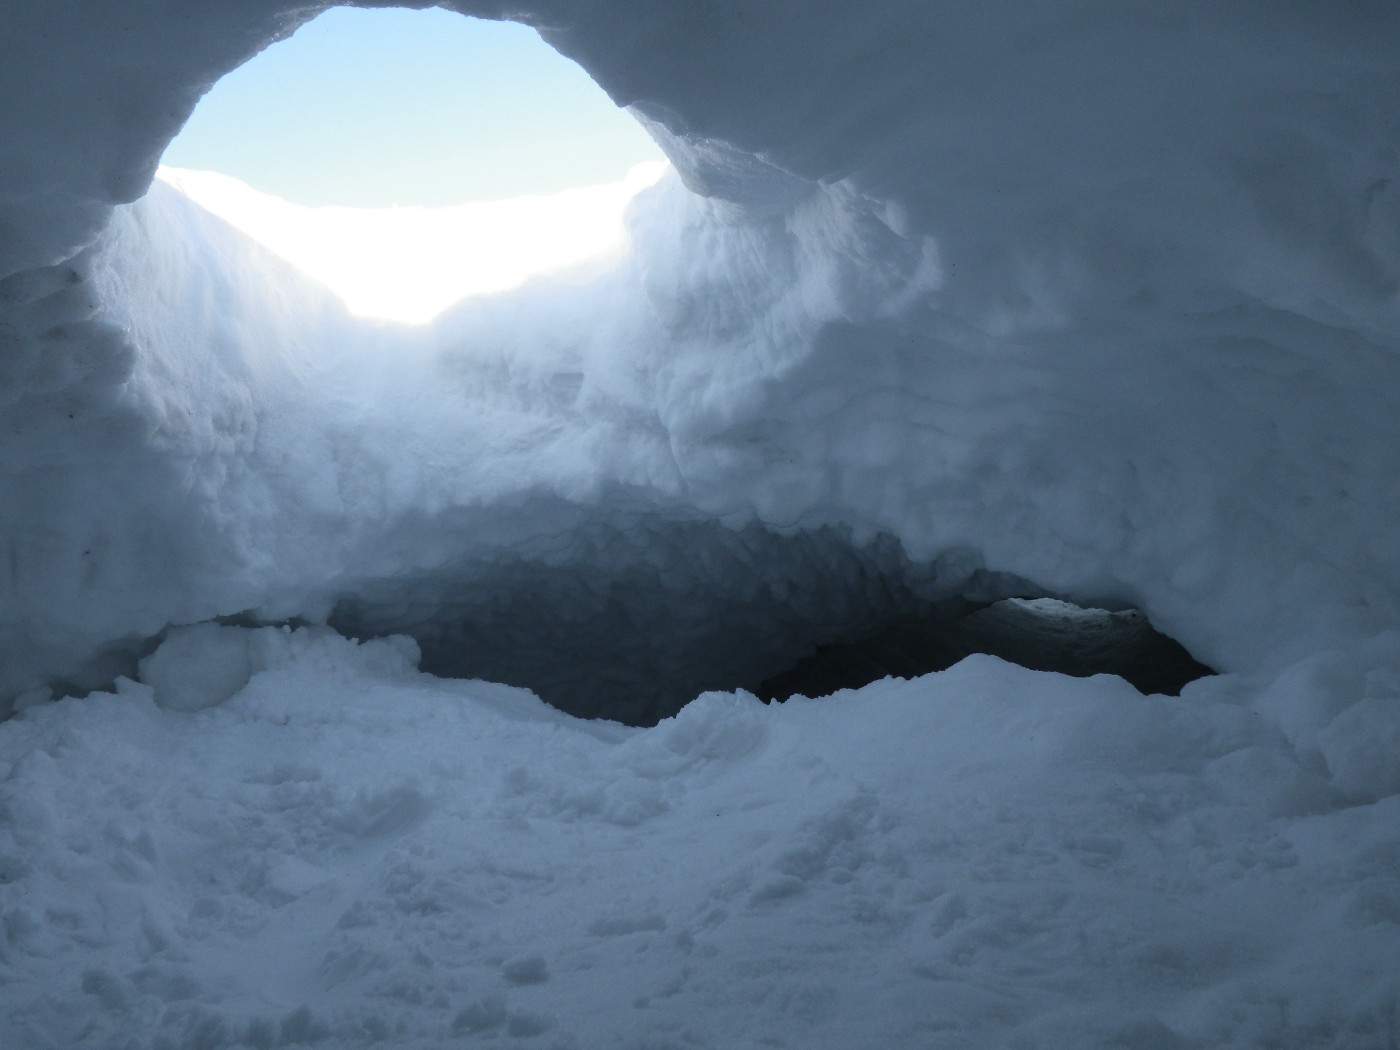 View from inside a den, showing a cave of snow and a hole to the outside.